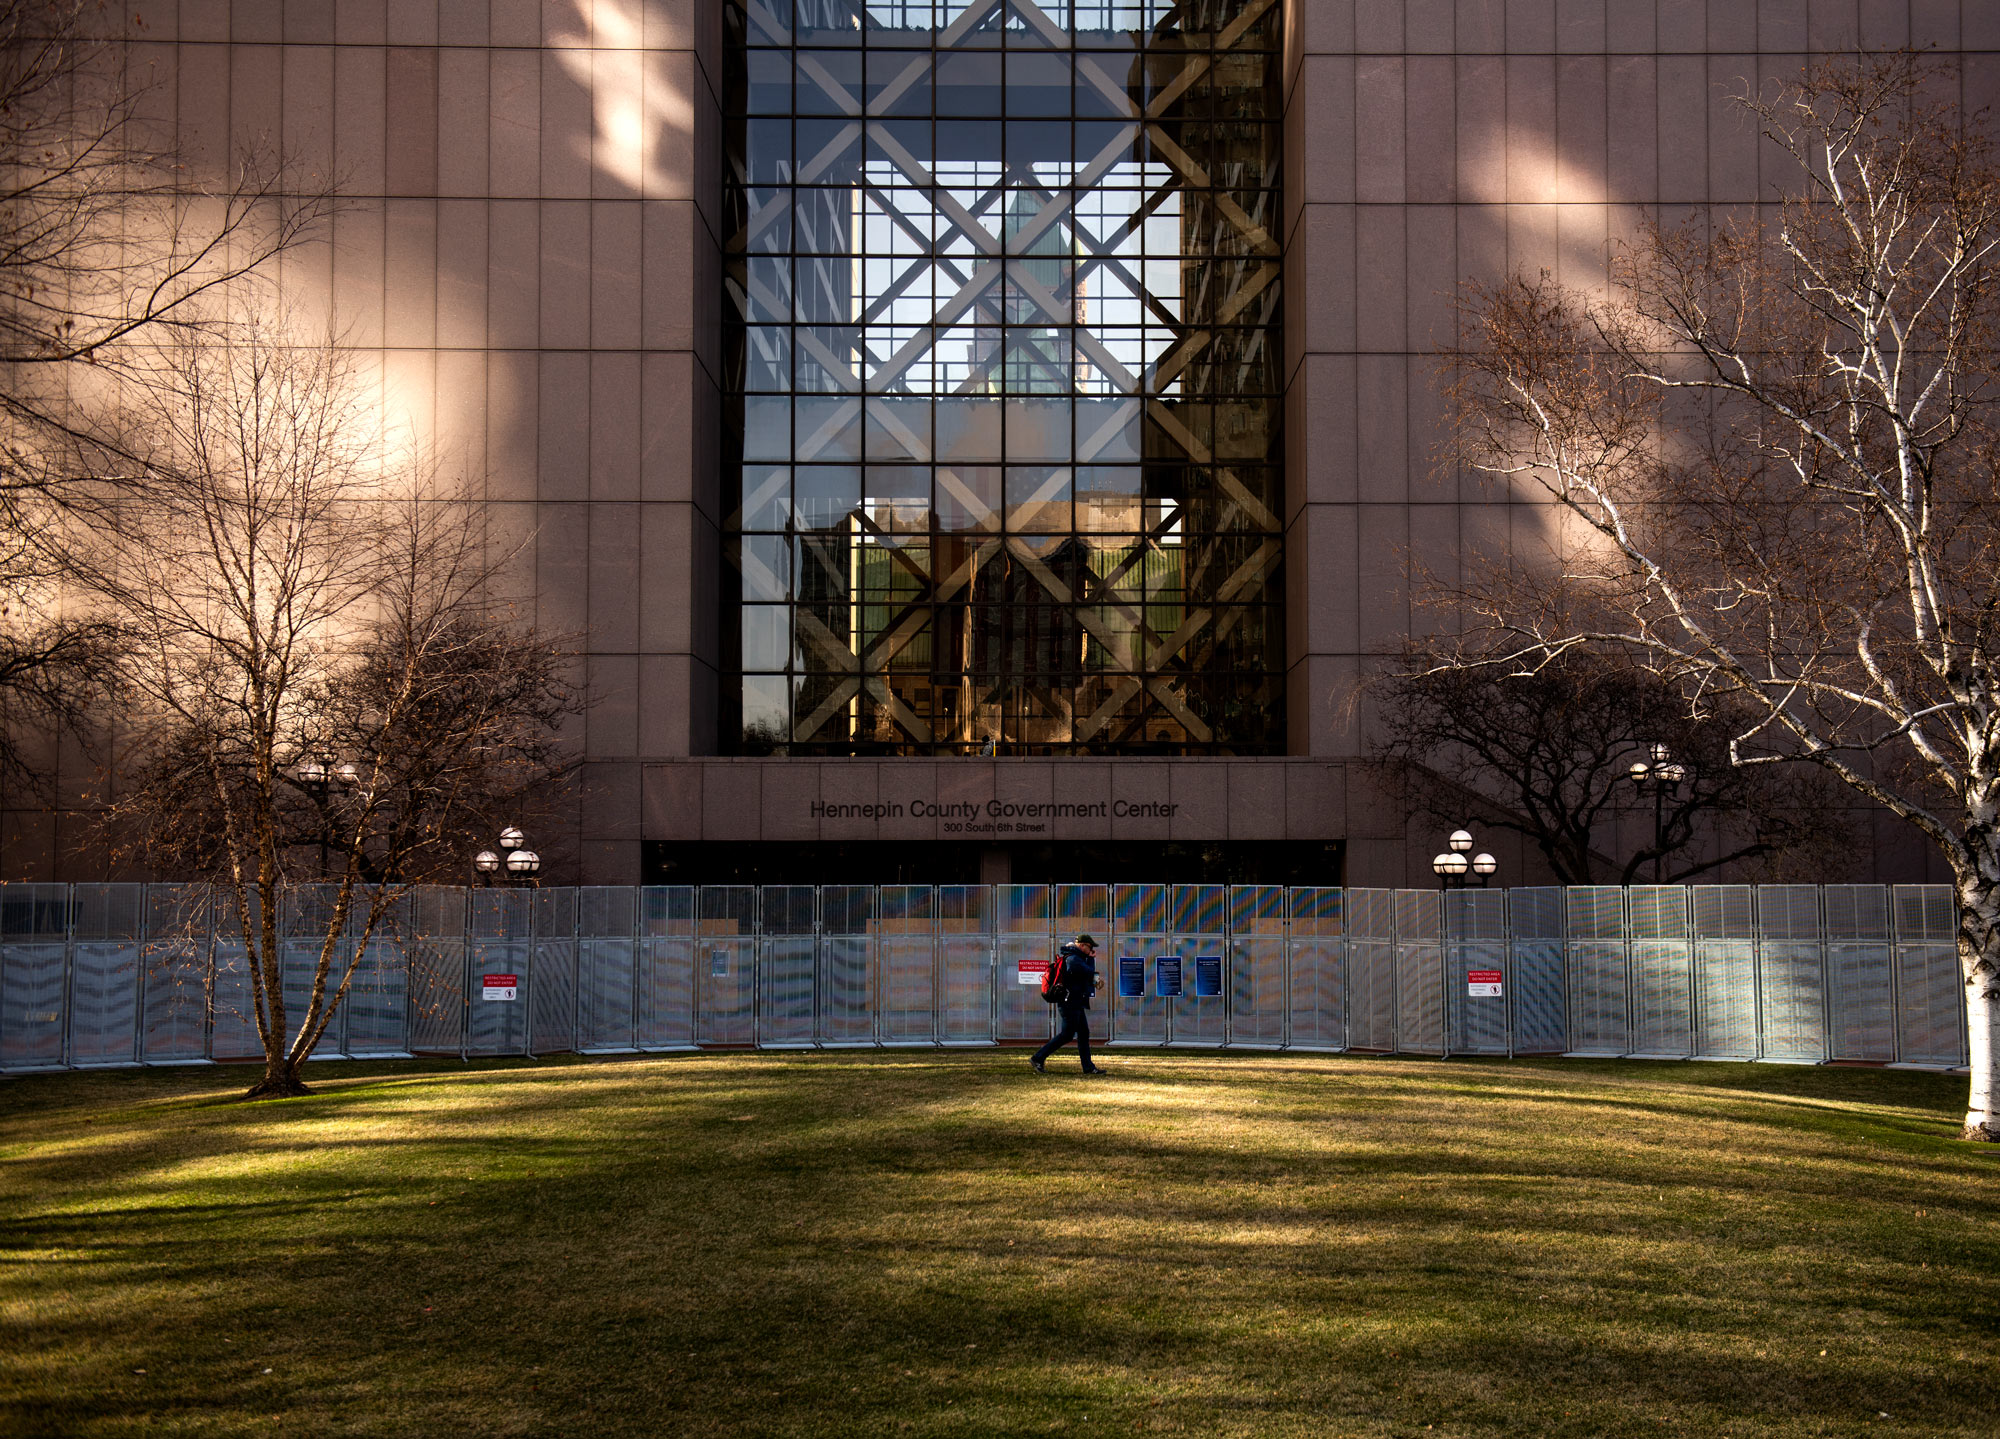 A man walks on the lawn outside the Hennepin County Government Center on April 1 in Minneapolis, Minnesota.